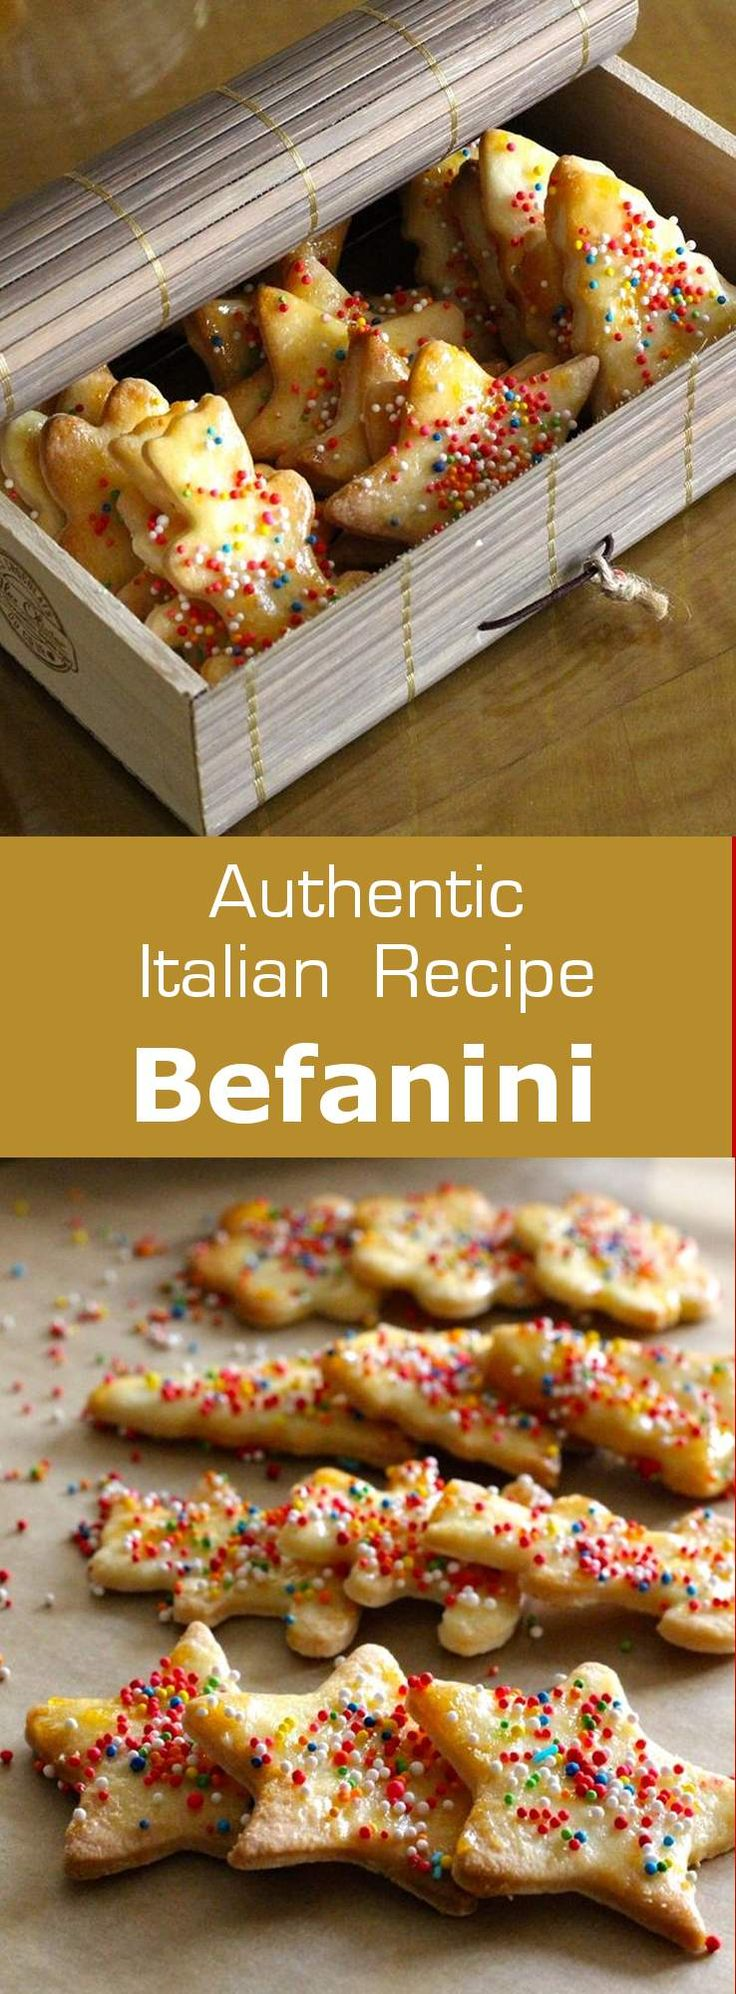 Befanini are small traditional shortbread cookies served in Italy on the day of Epiphany known over there as La Befana.